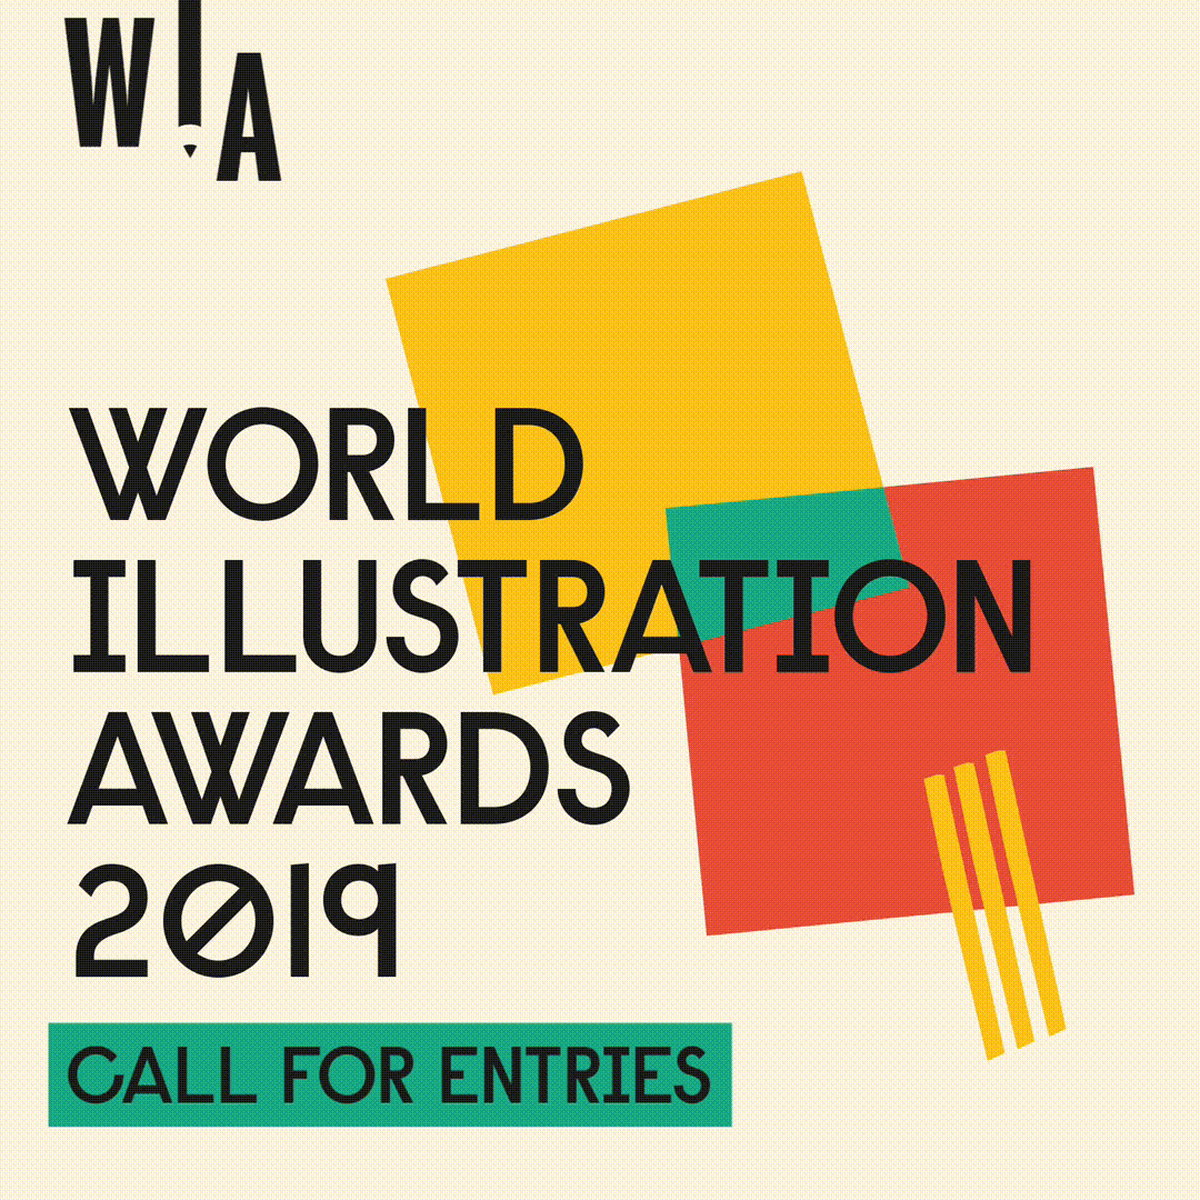 2019 World Illustration Awards Now Open for Entries